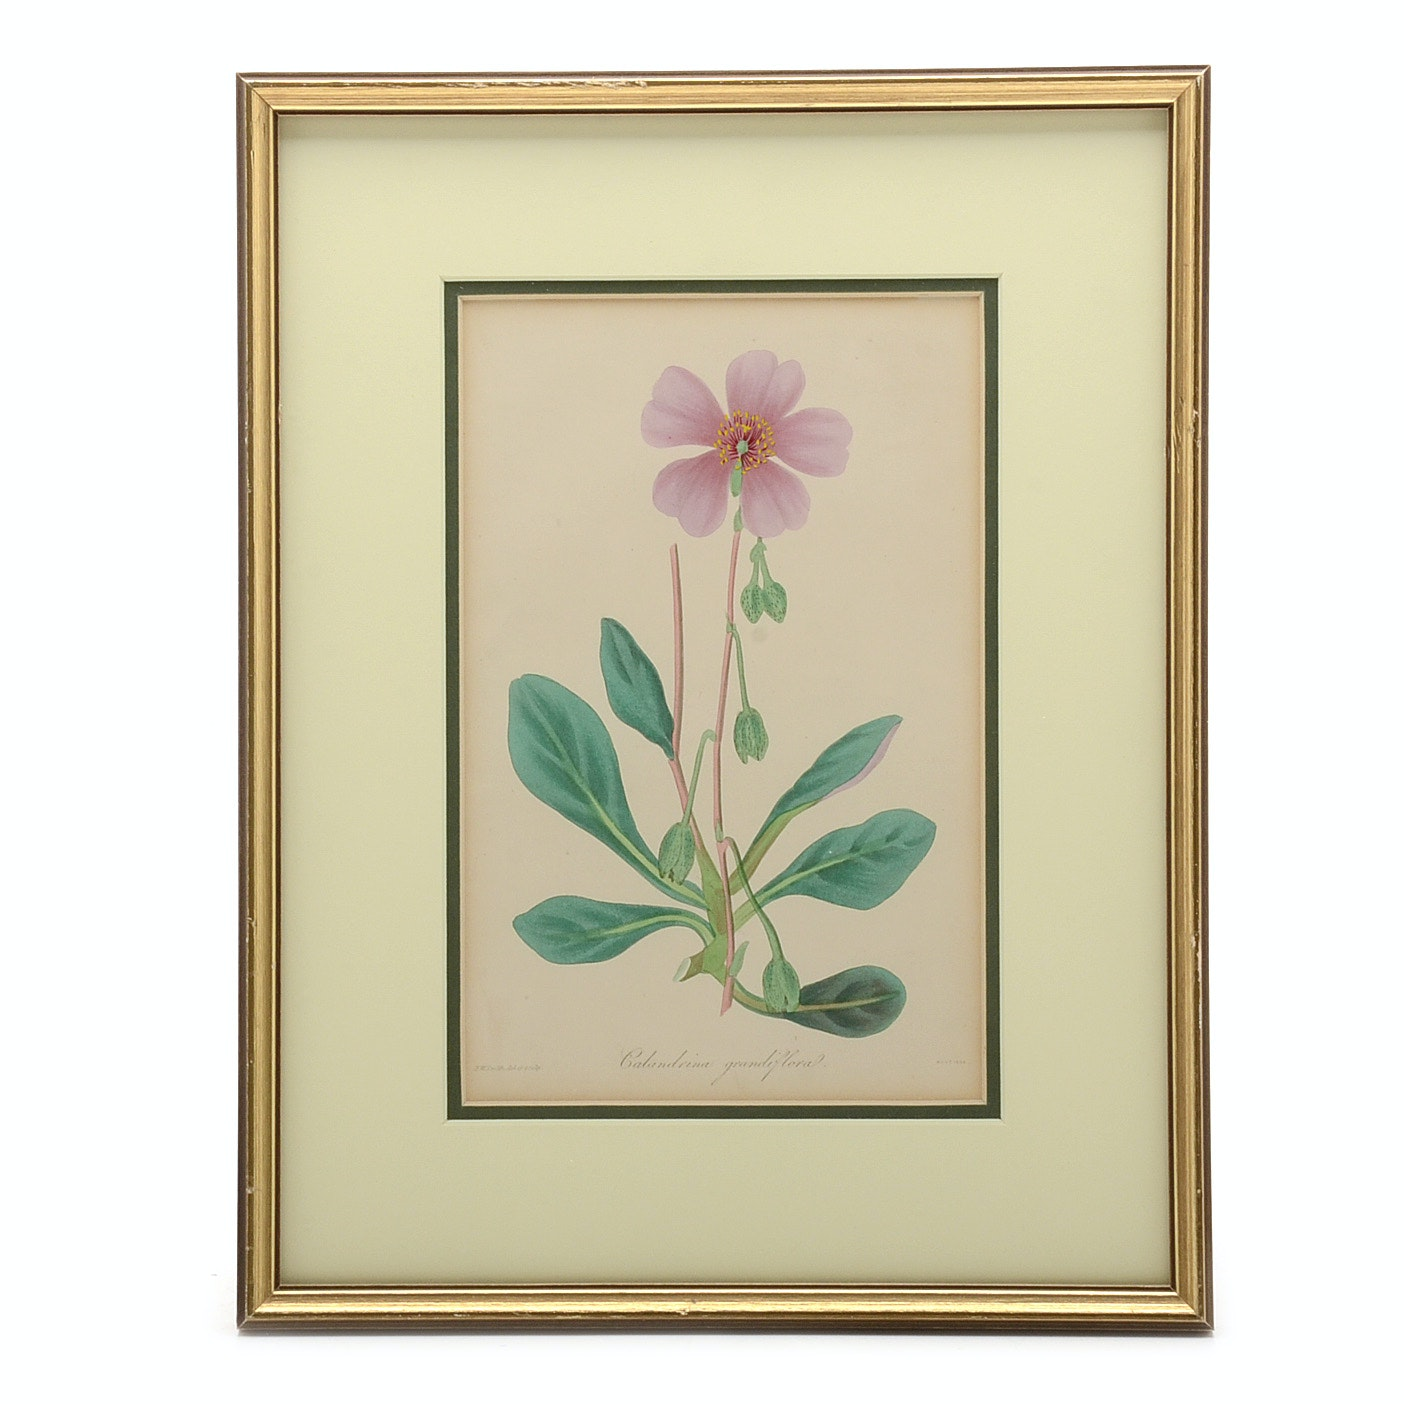 Antique Hand-colored Botanical Engraving